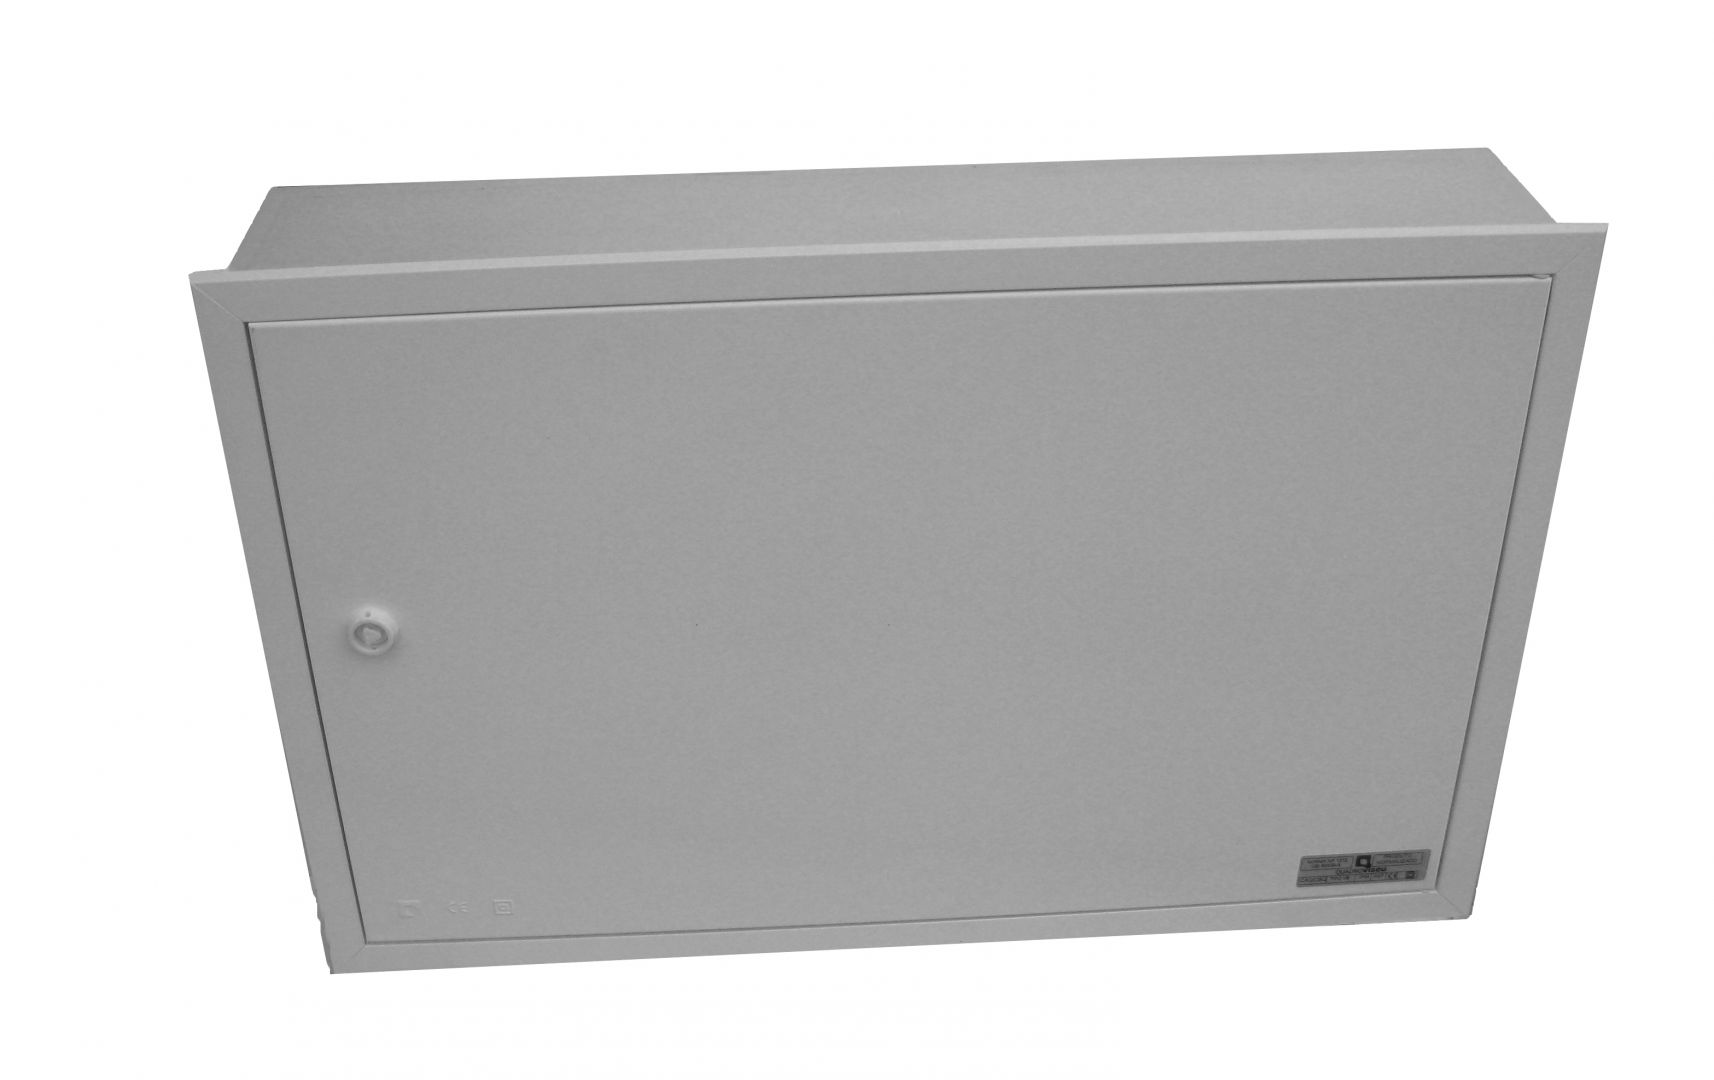 EMPTY BUILT-IN VISBOX BOX WITH DOOR AND FRAME 620X400X130